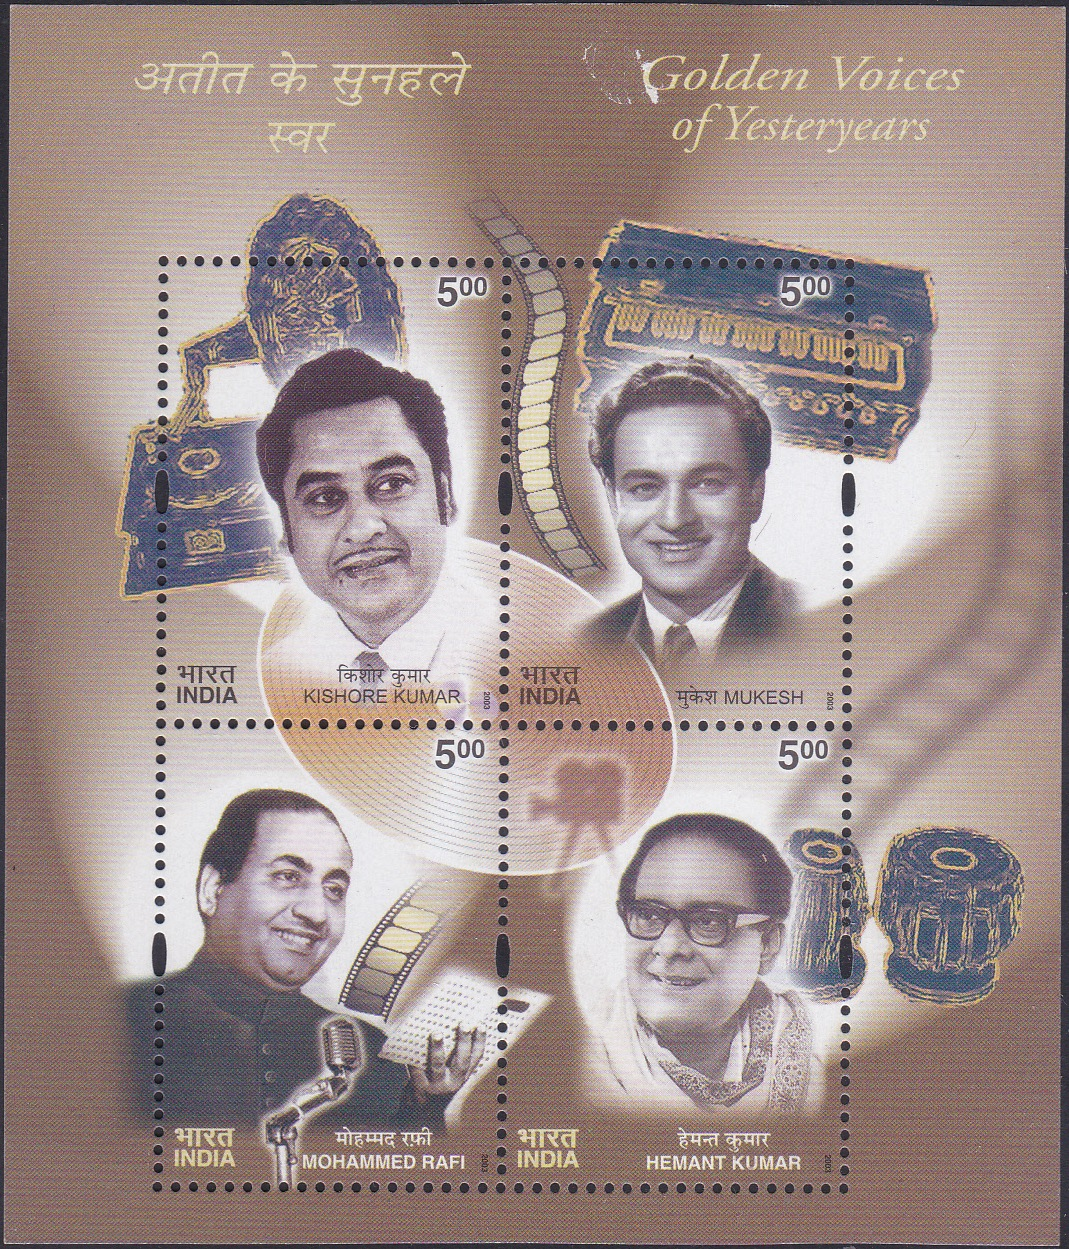 Golden Voices of Yesteryears